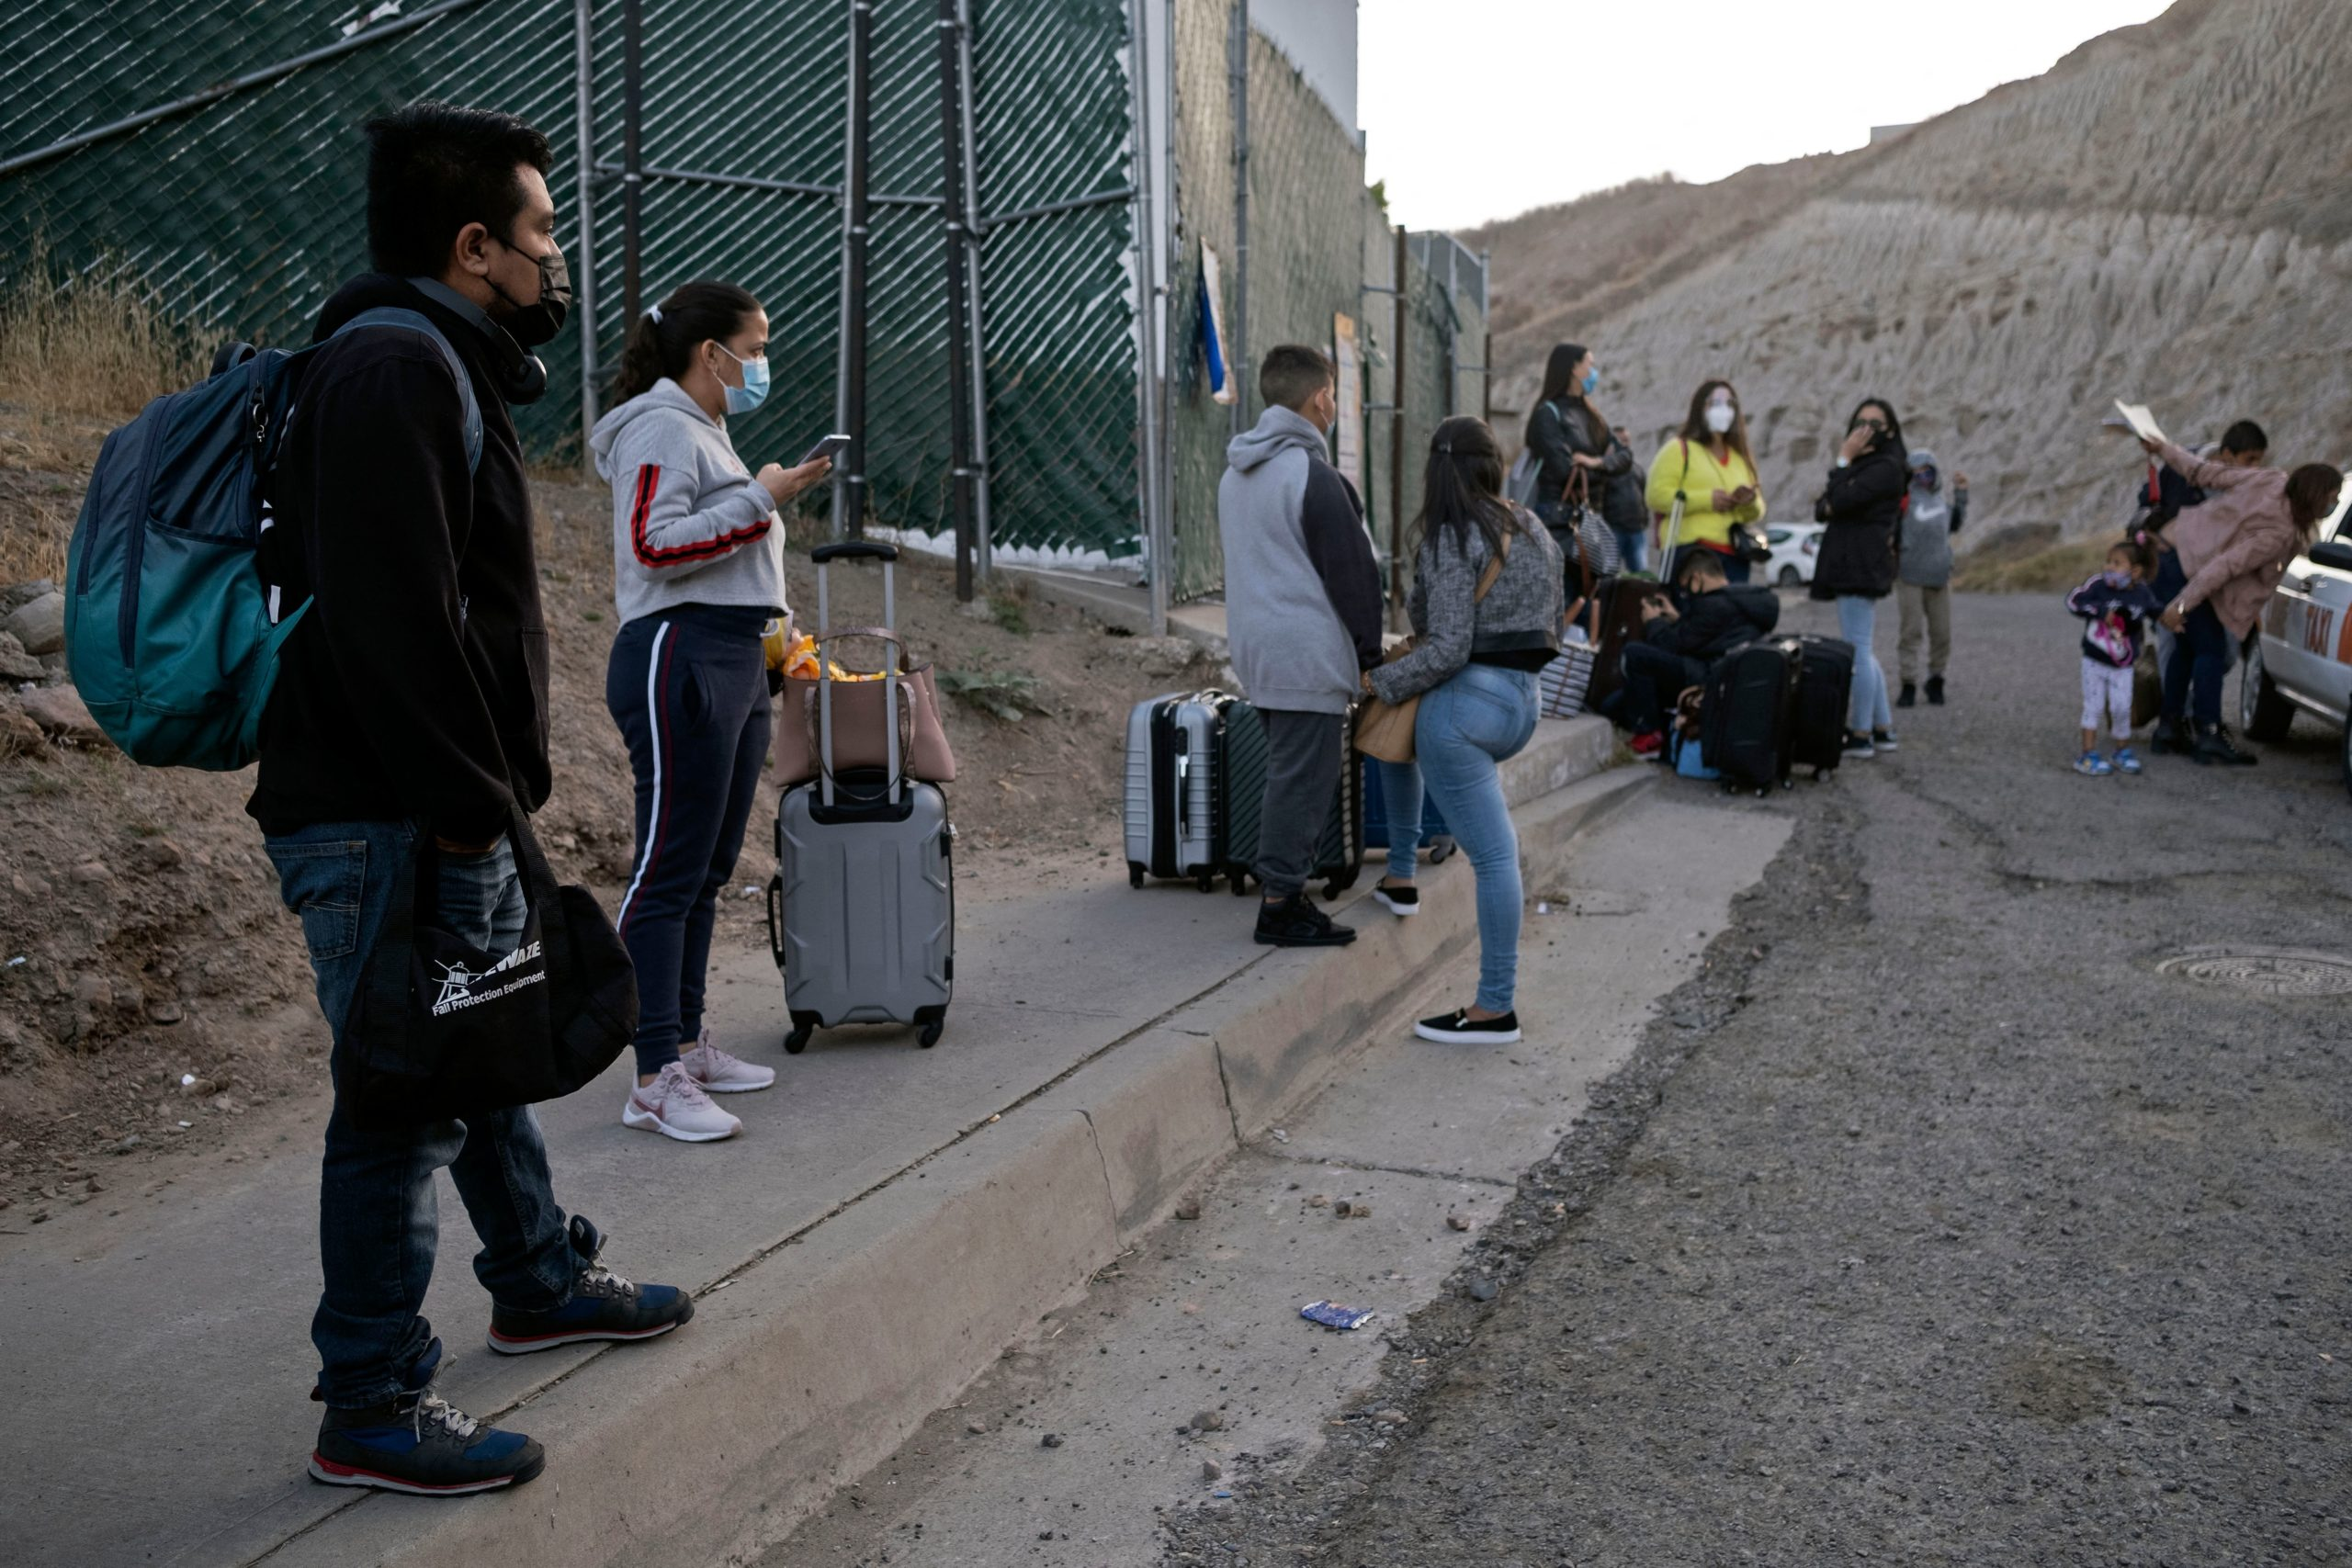 The Biden administration was reportedly uncertain about the effectiveness of developmental aid in reducing migration from Central America, according to The Washington Post. Some officials said expanding U.S. work visa programs beyond the 6,000 H-2B visas allocated for El Salvador, Guatemalan and Honduran citizens could be effective.